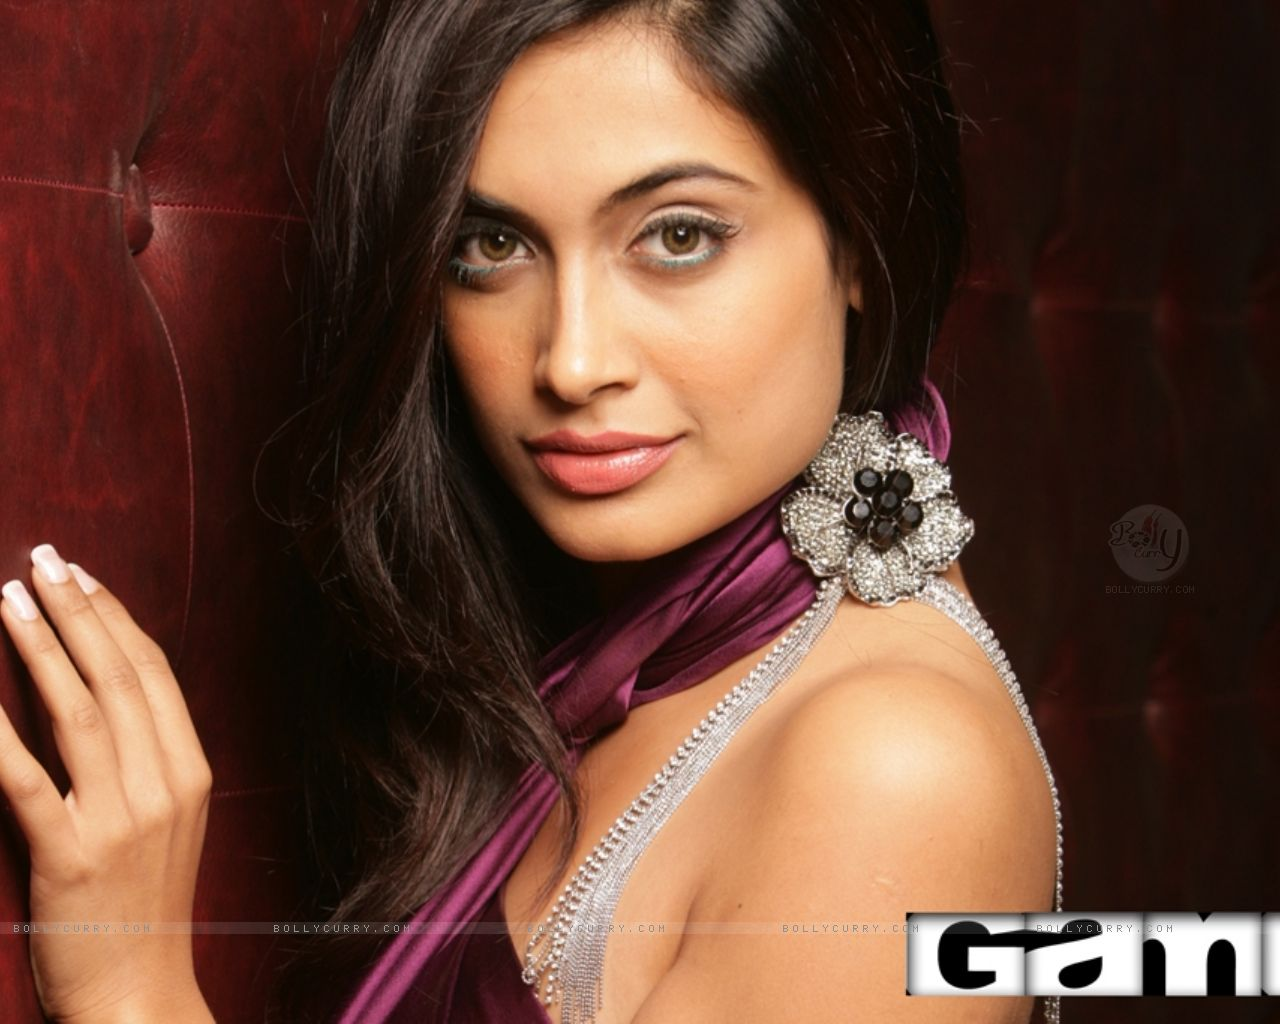 Bollywood Acterss Images Sara Jane Dias Images-5888